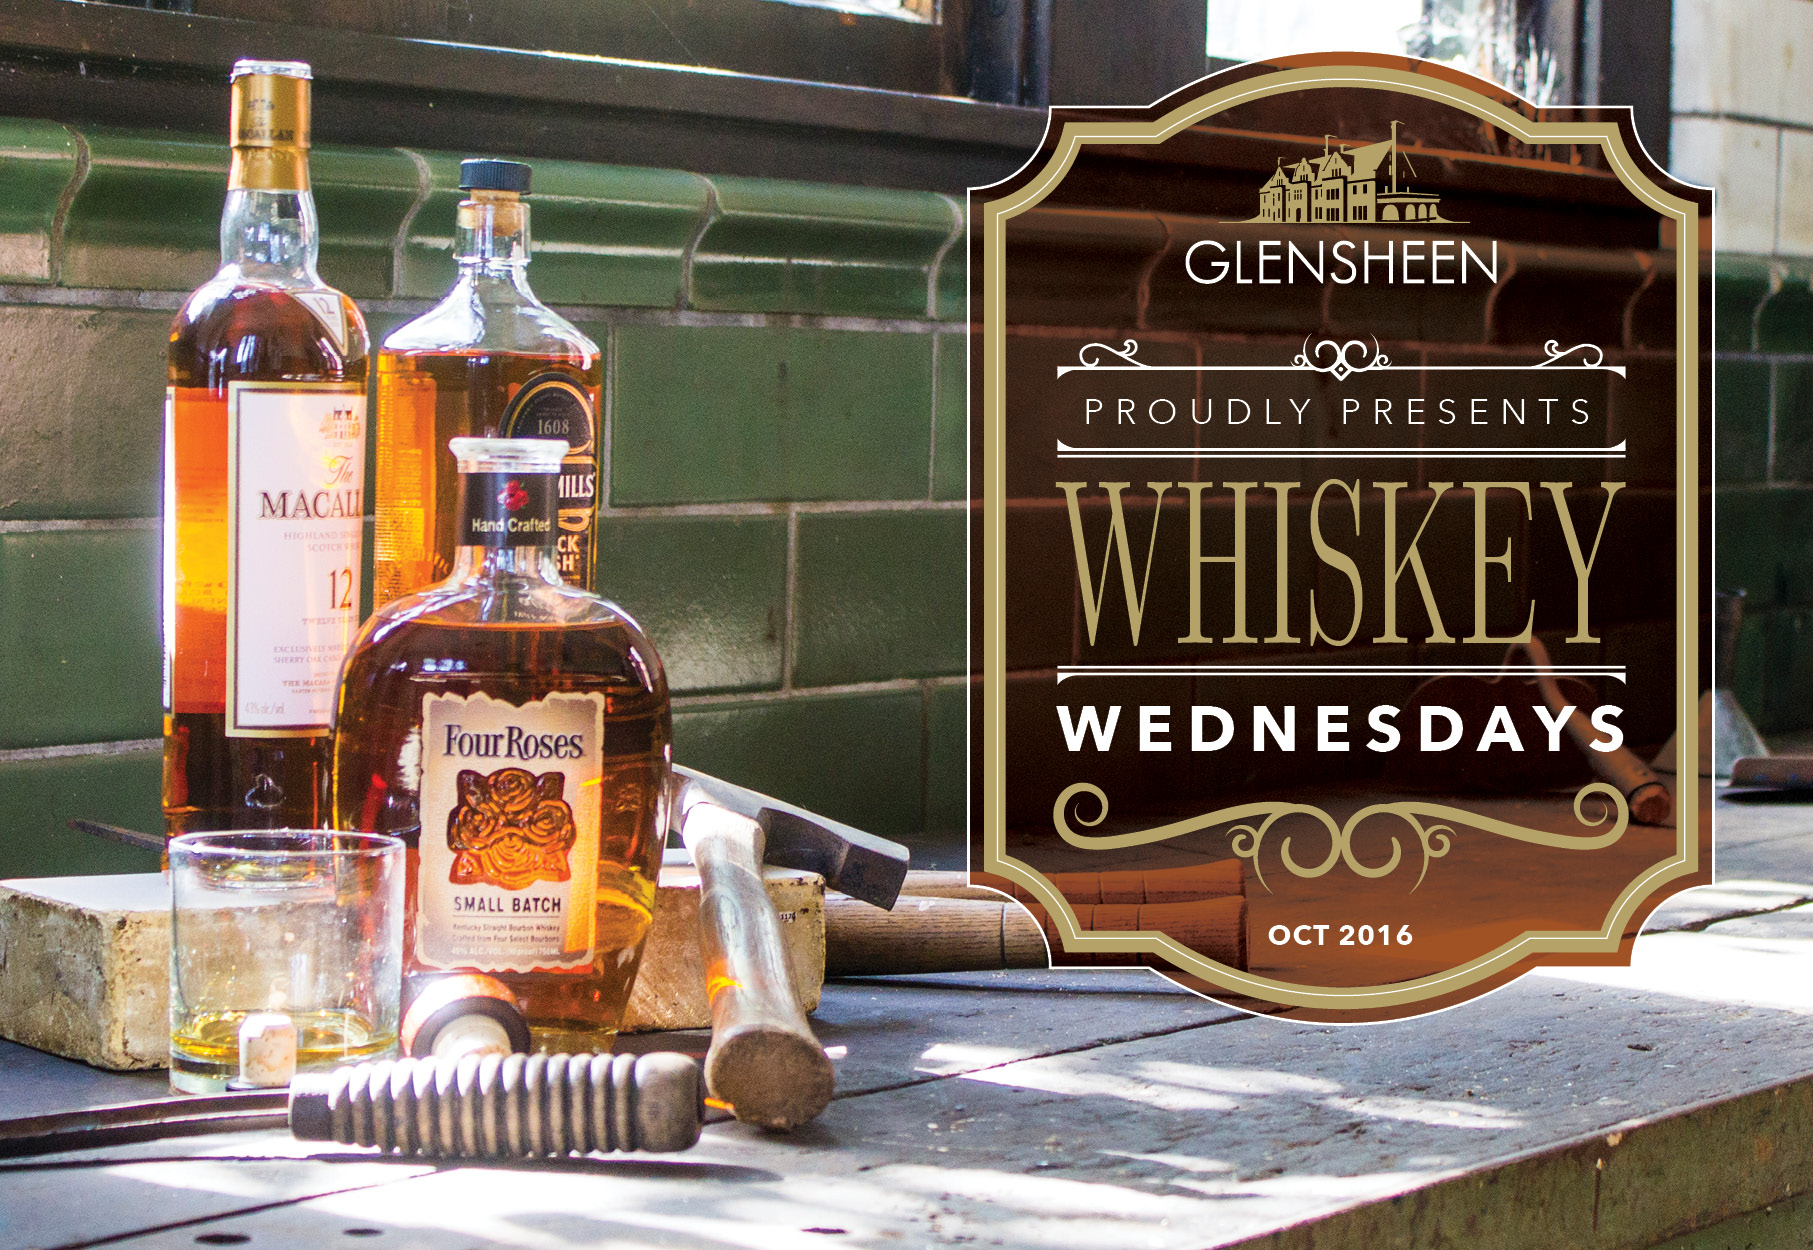 Whiskey Wednesdays - Glensheen